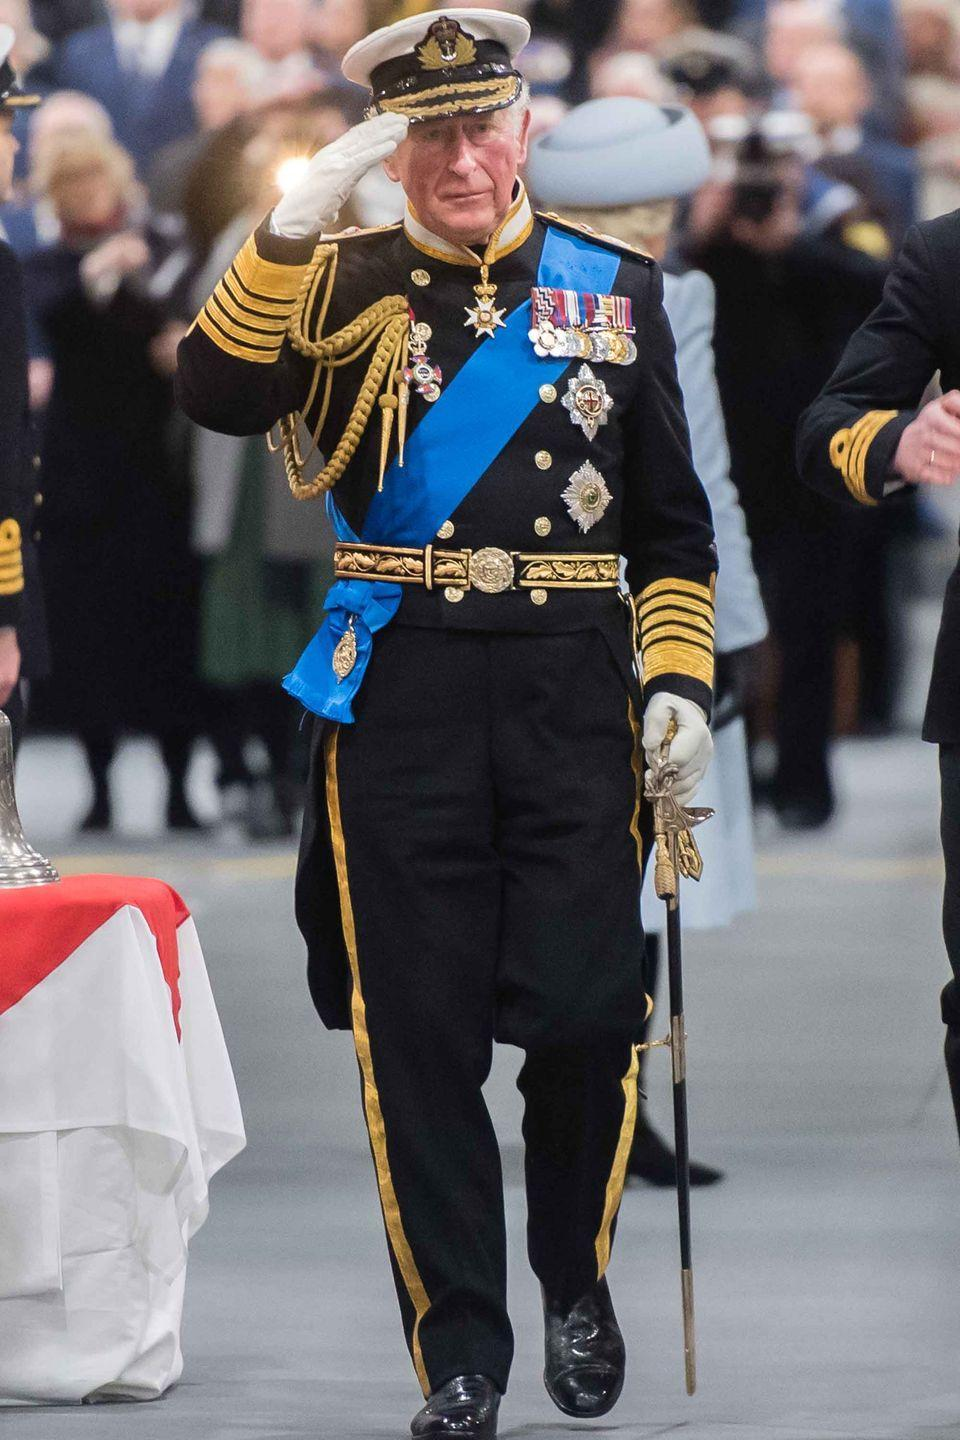 <p>Prince Charles attends the official Commissioning Ceremony of the aircraft carrier HMS Prince of Wales at Her Majesty's Naval Base in Portsmouth, England.</p>